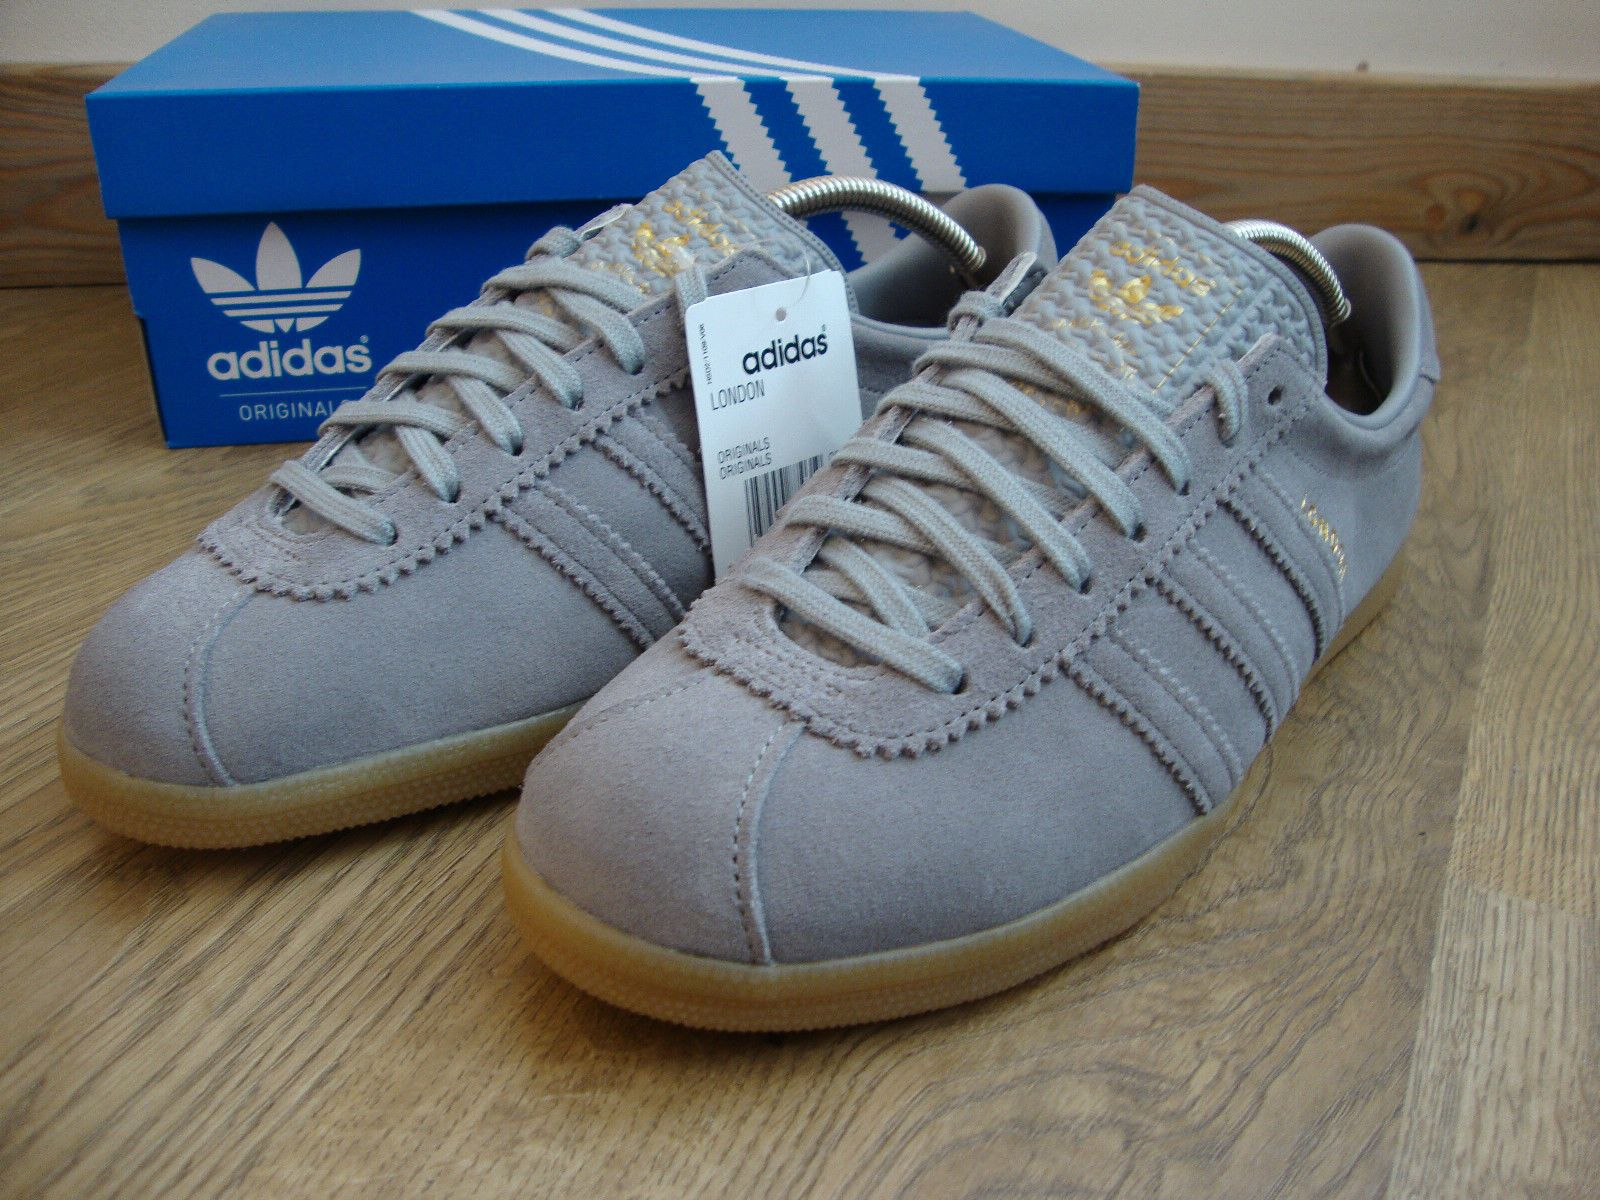 a2ddabaab5d Adidas Originals London Trainers Aluminium Grey Gum BNIB Size UK 9 EU 43 1  3